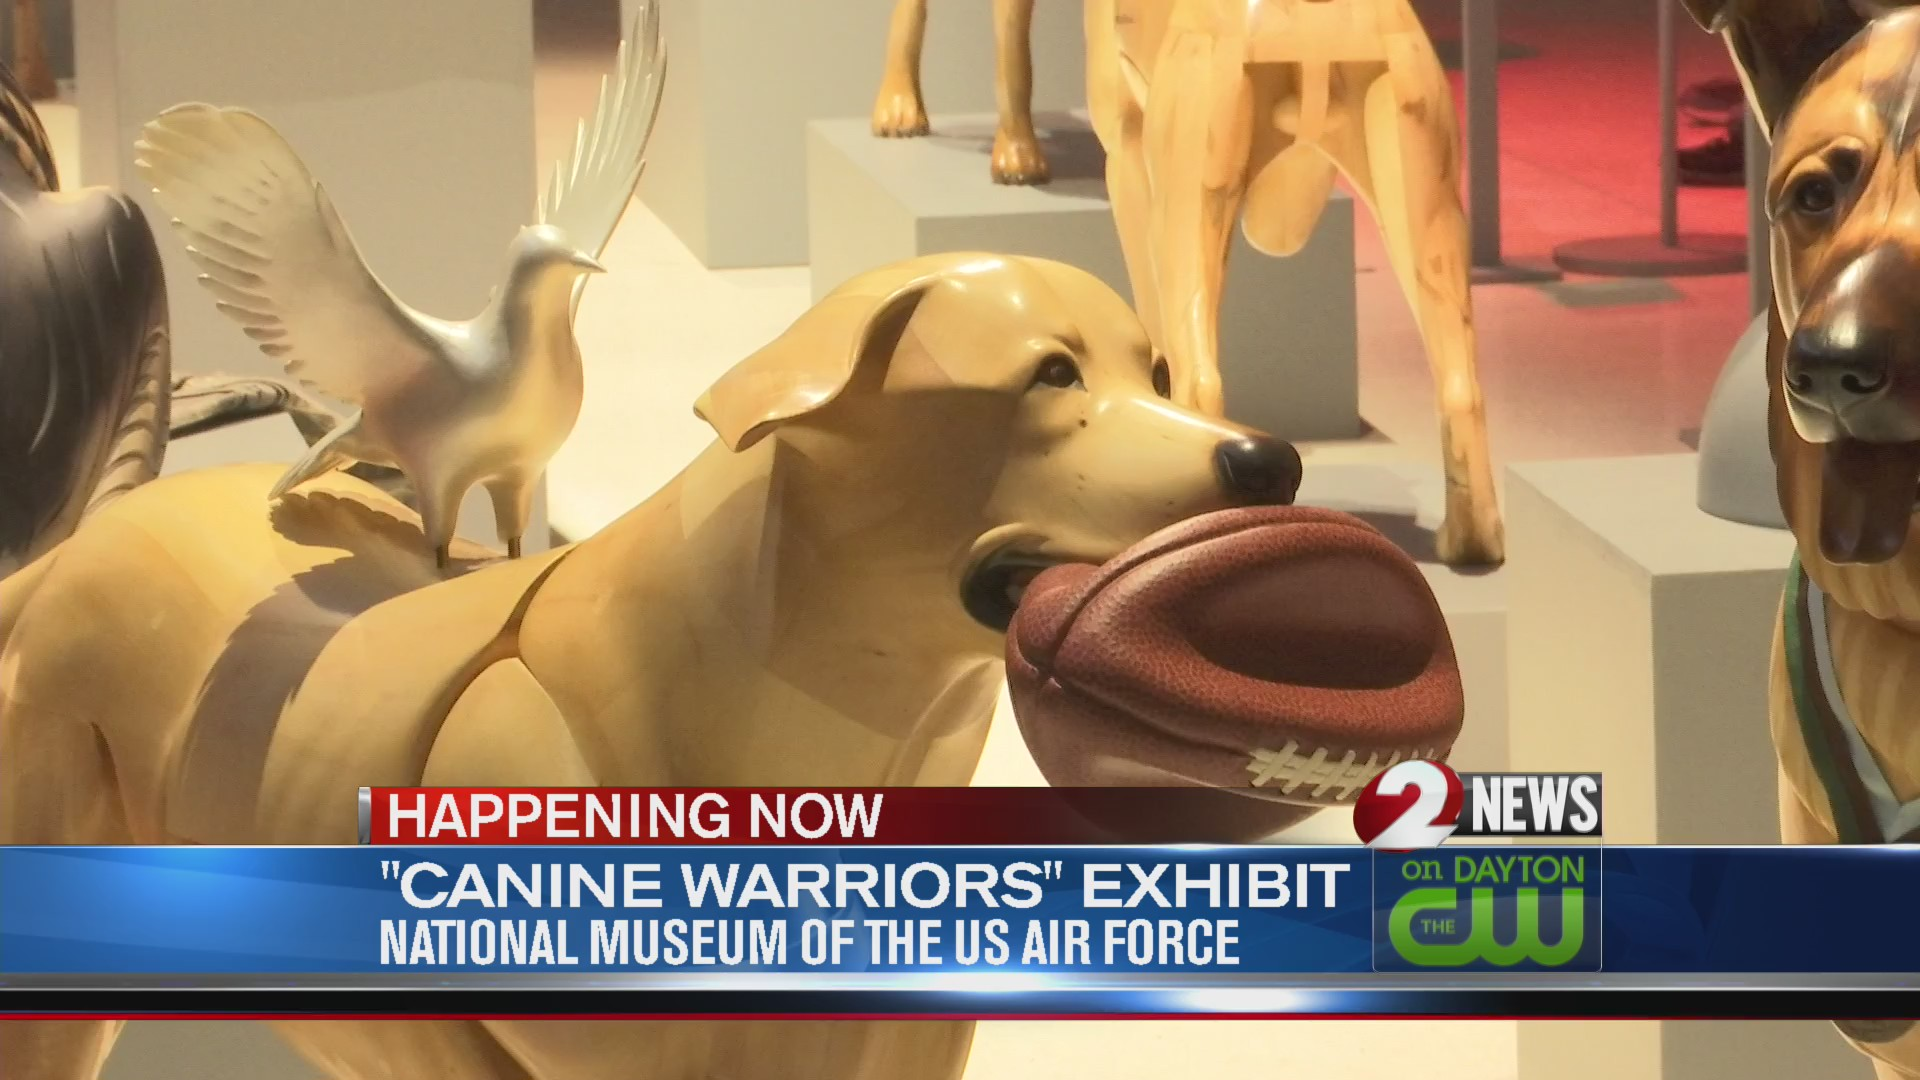 Canine Warriors exhibit